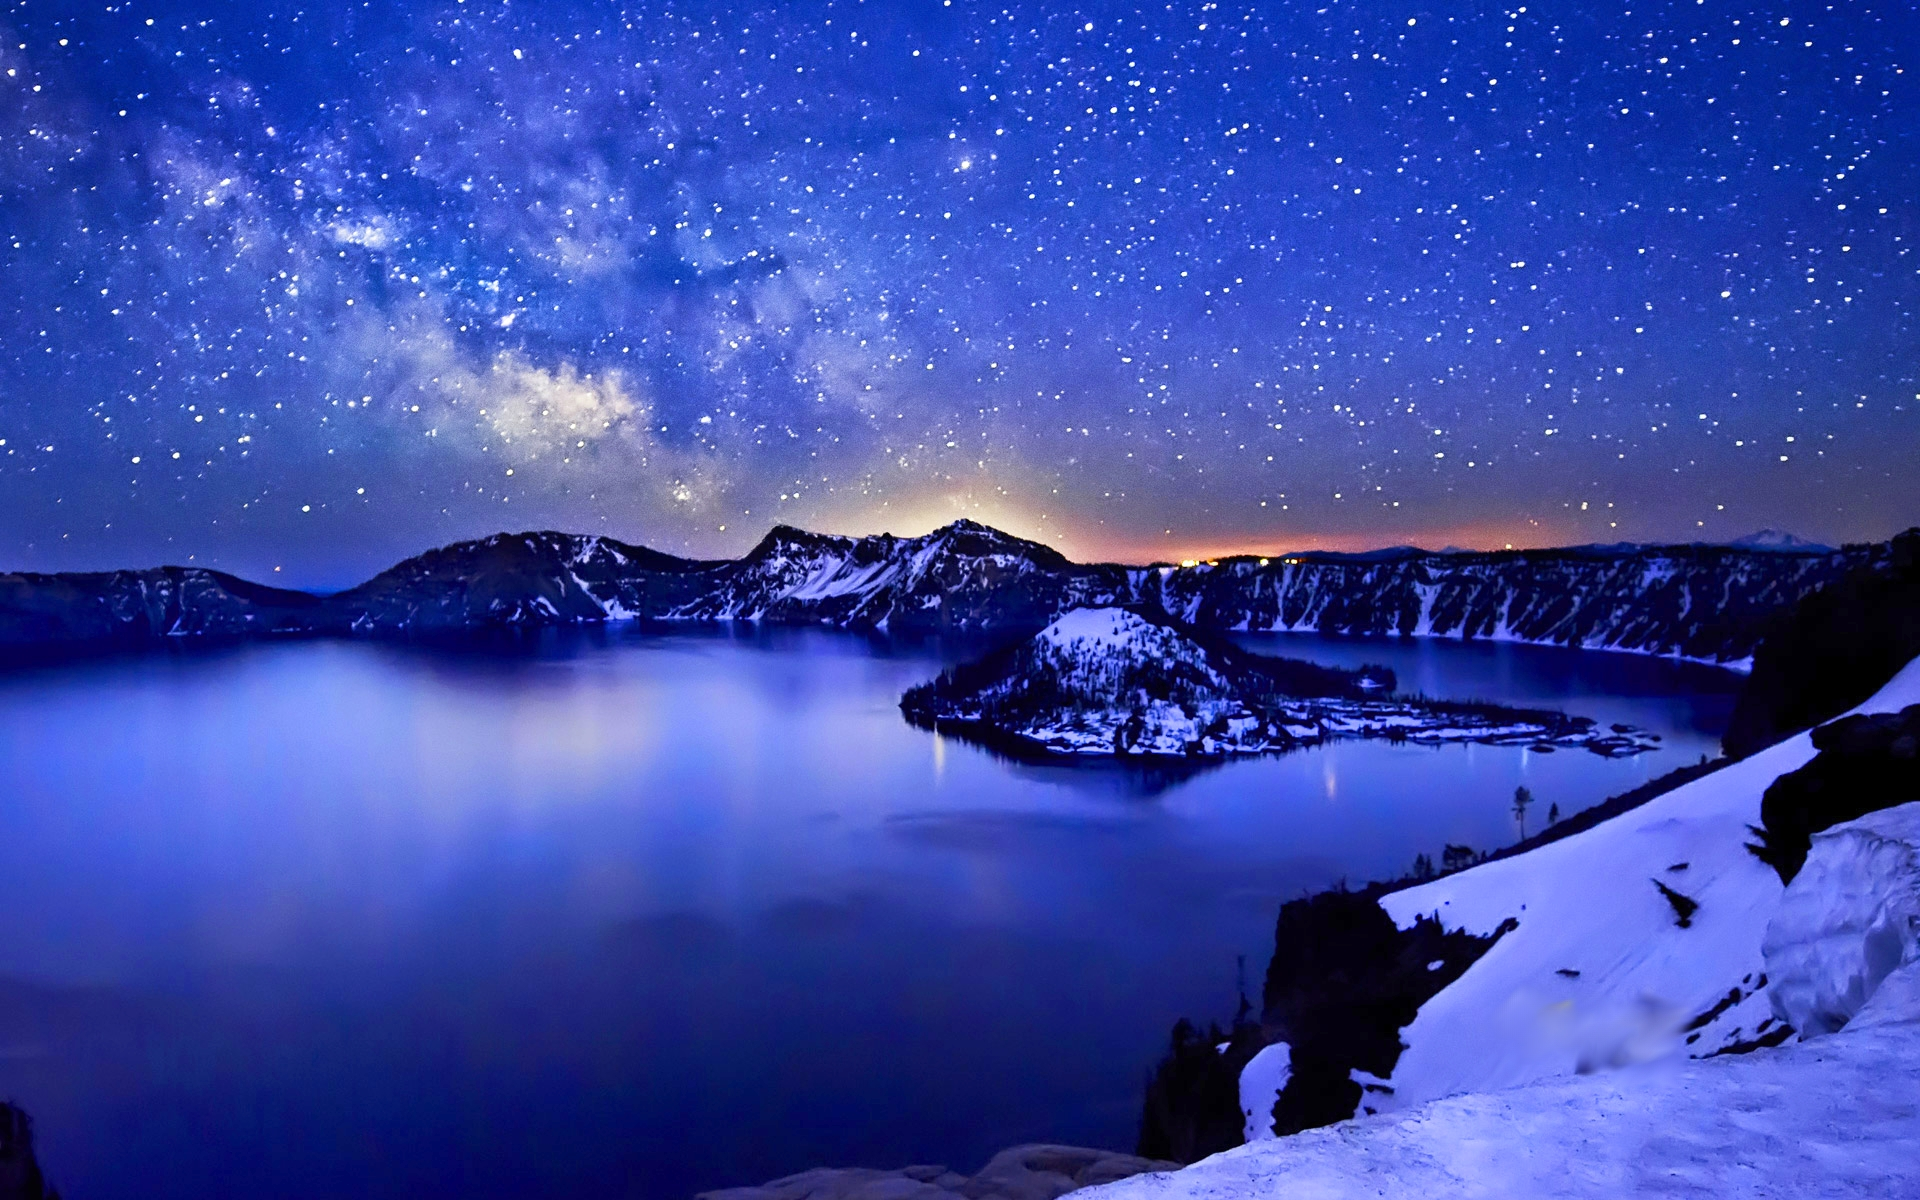 milky way wide desktop background | wallpaper.wiki